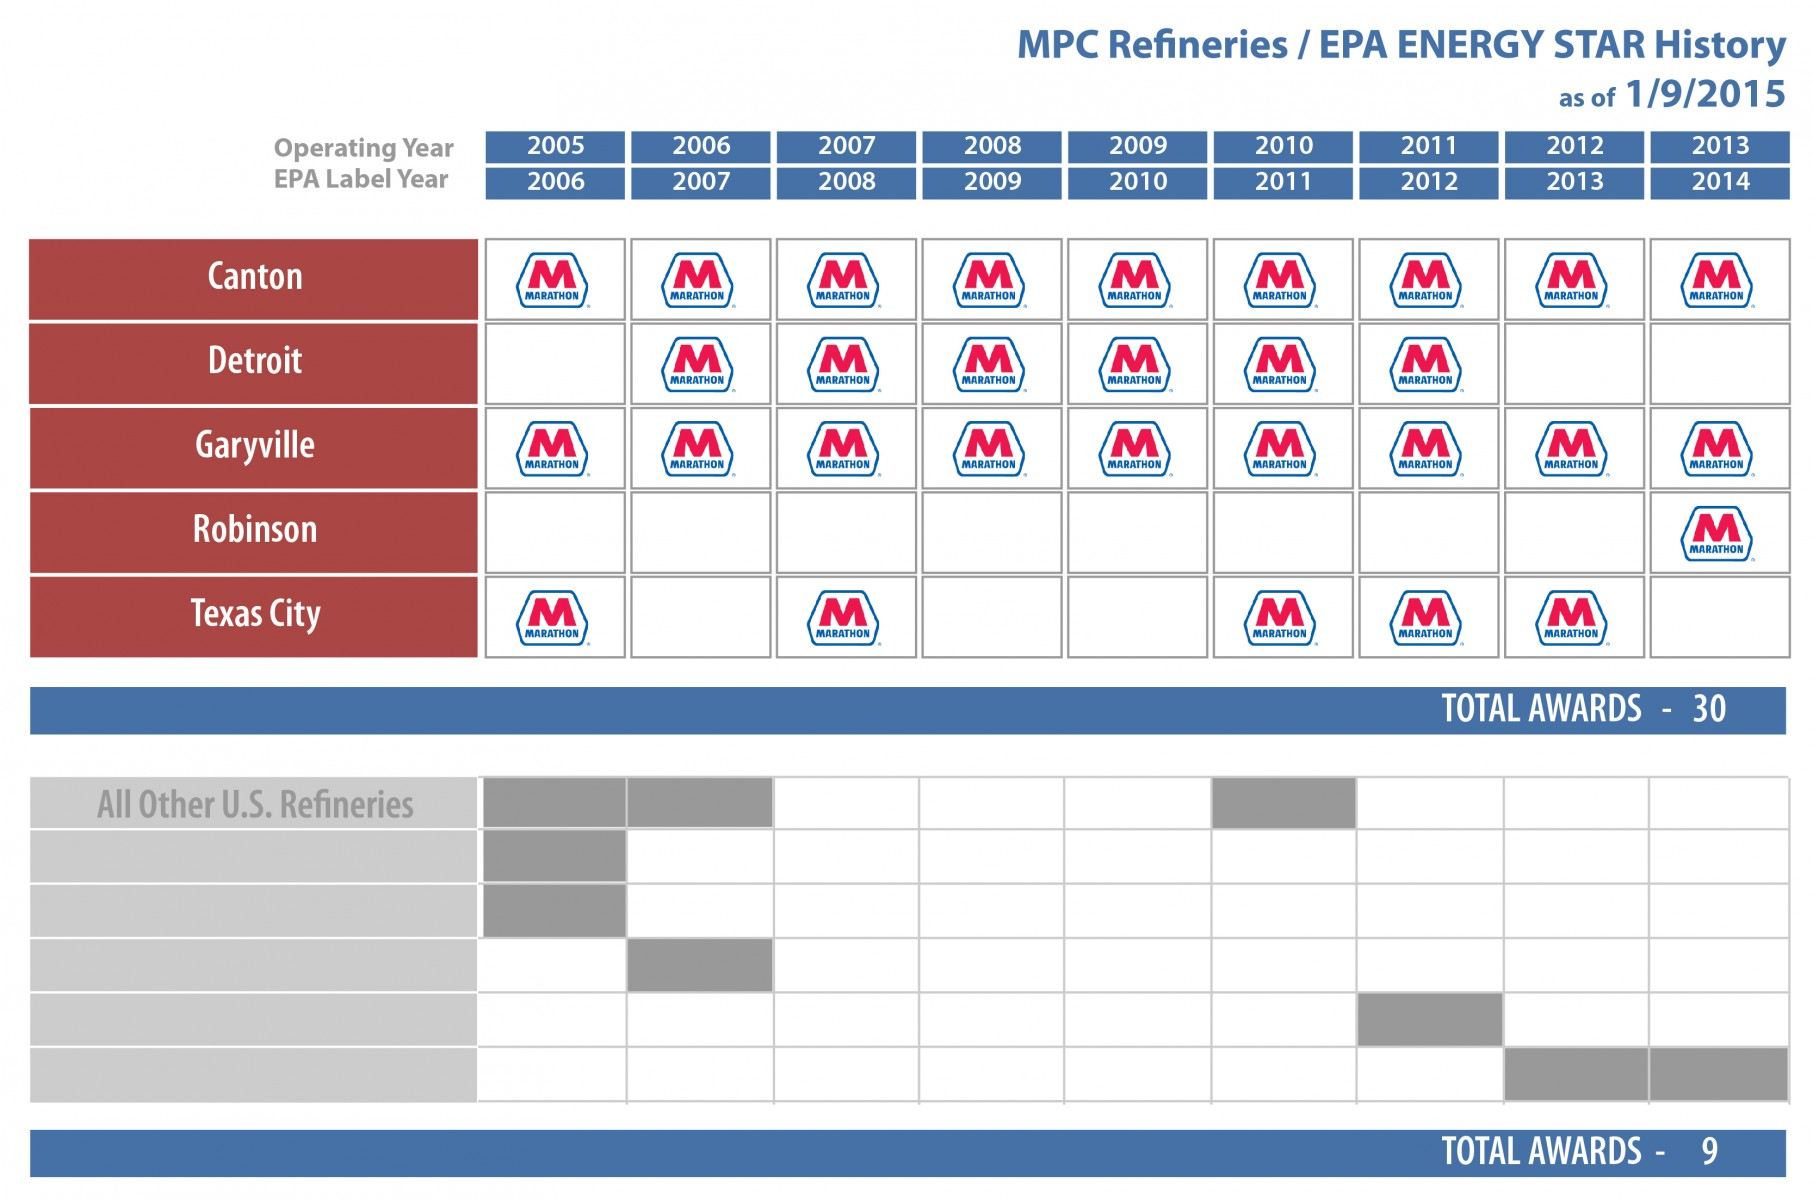 MPC Refineries / EPA ENERGY STAR History